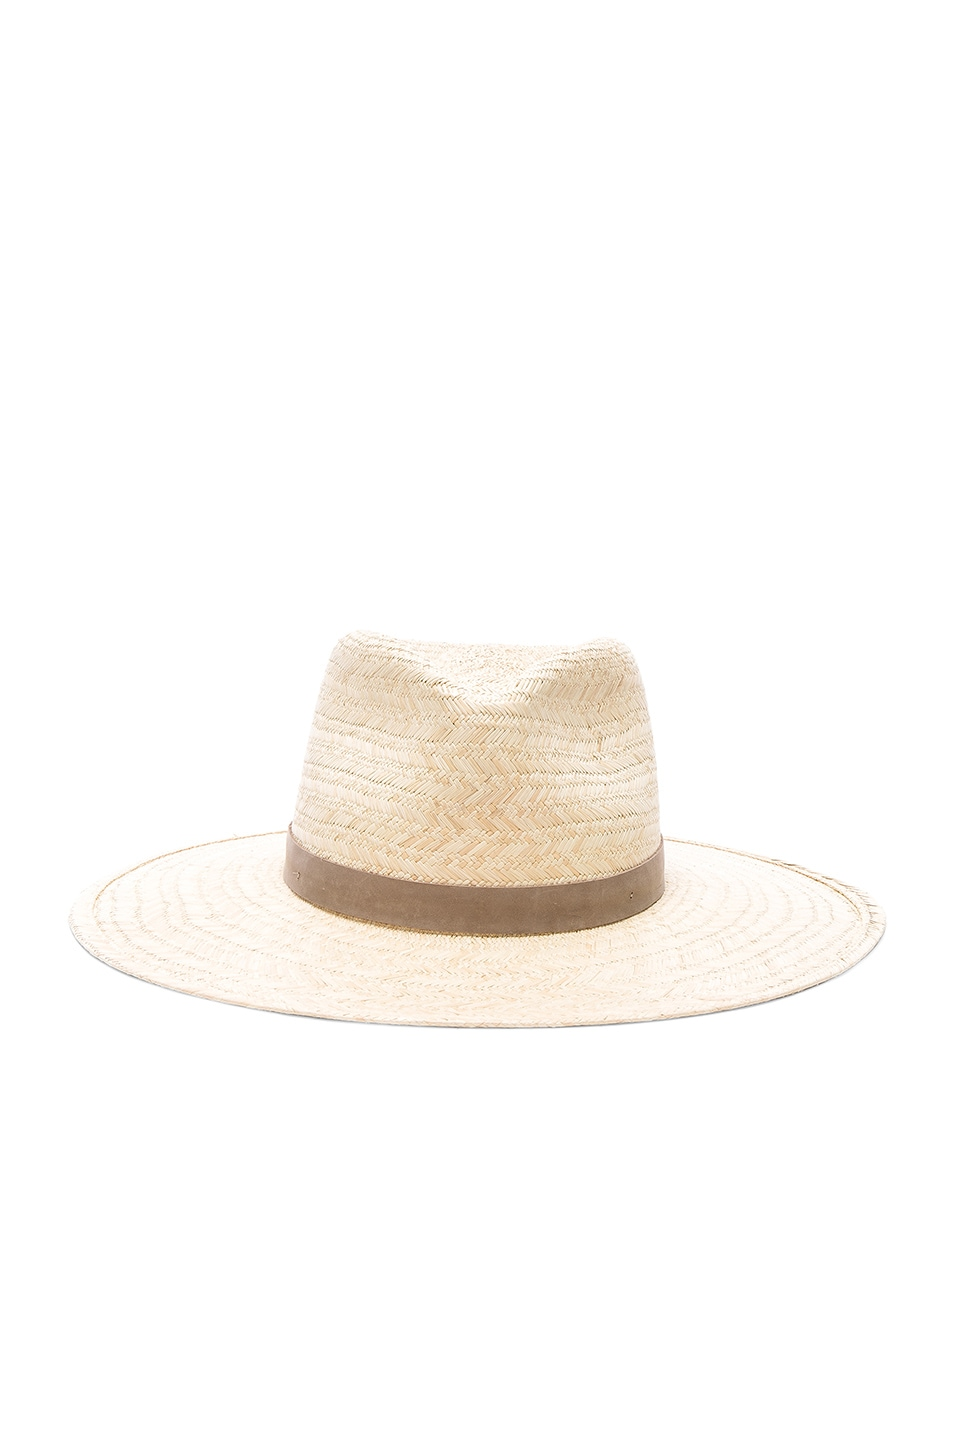 b8bb4ae23b2e2a Image 1 of Janessa Leone Dillon Fedora Hat in Natural & Taupe